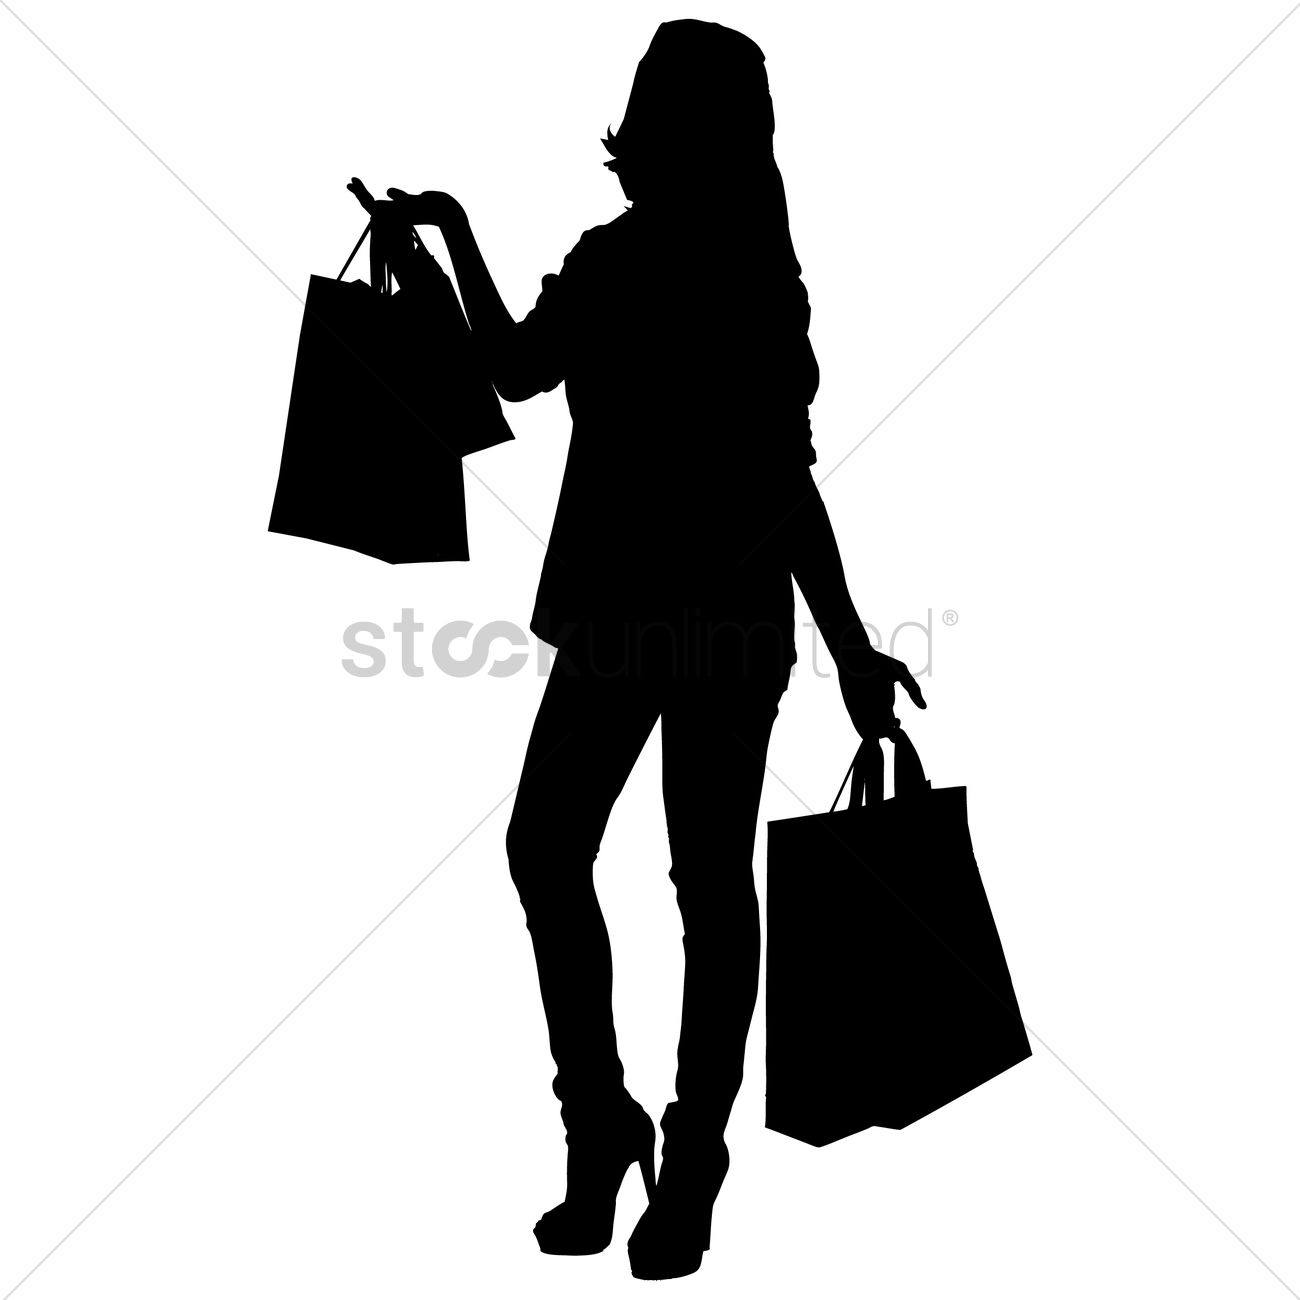 d1da474f08a Silhouette of a woman with shopping bags Vector Image - 1253827 ...